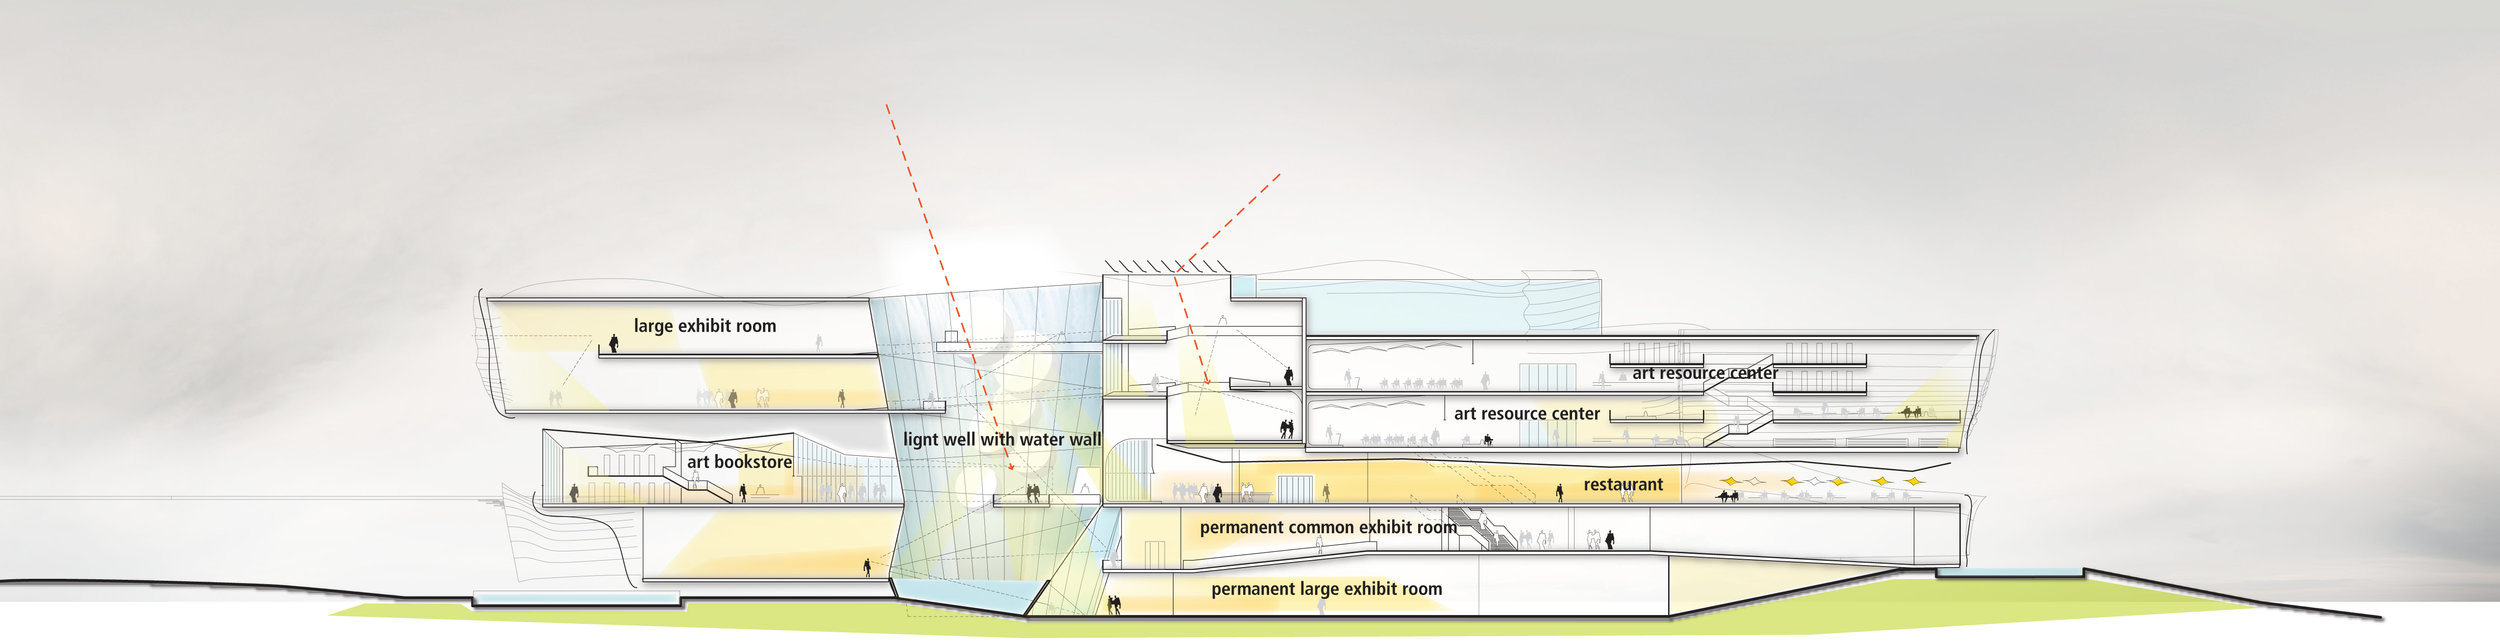 building section.jpg